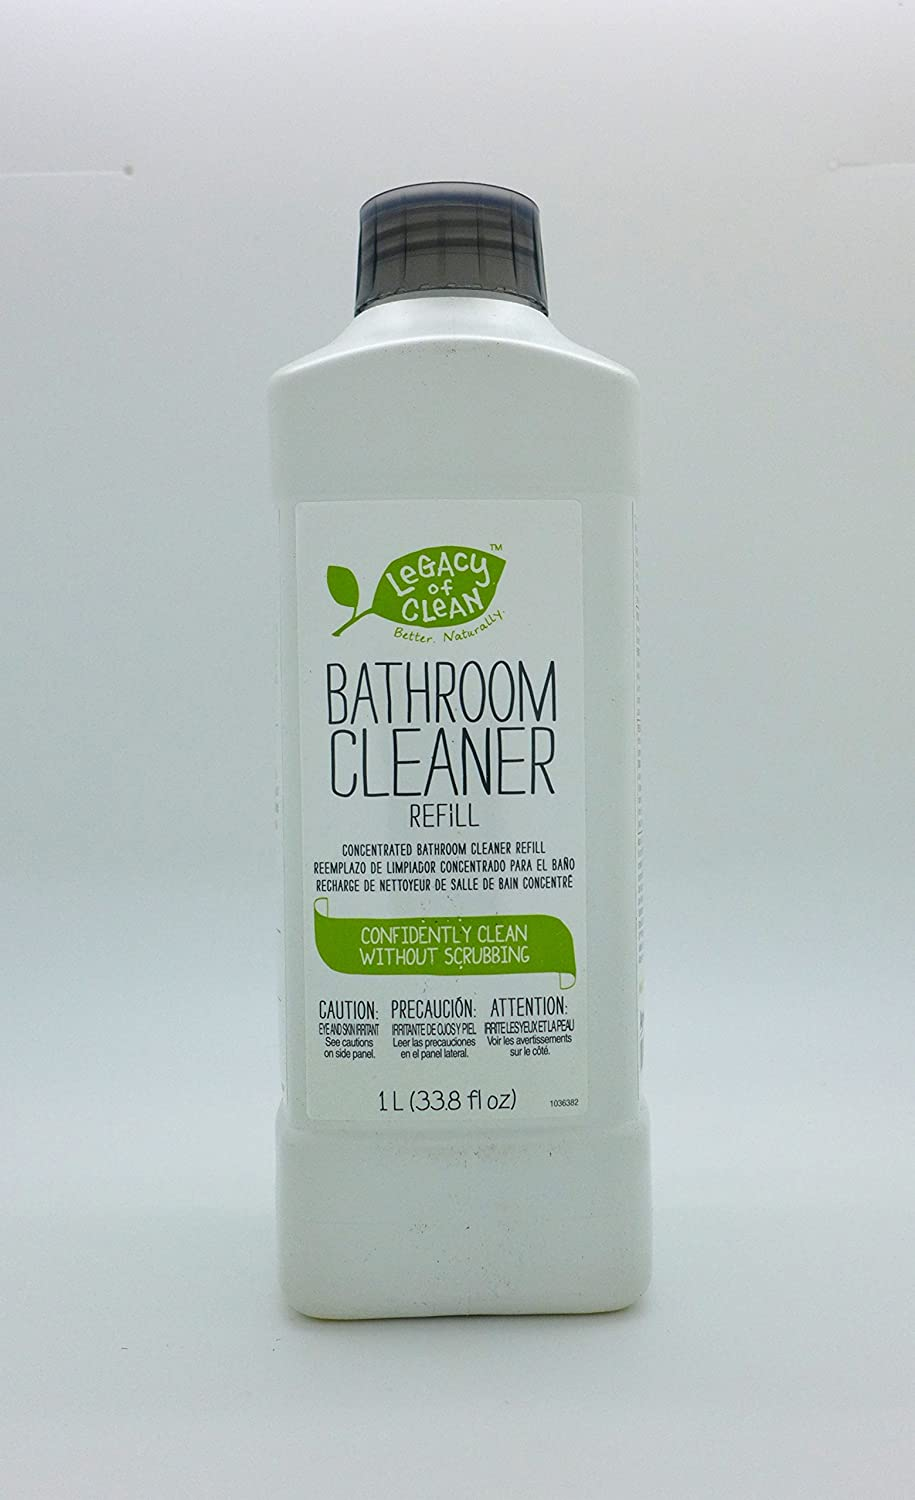 Legacy of Clean Bathroom Cleaner Refill